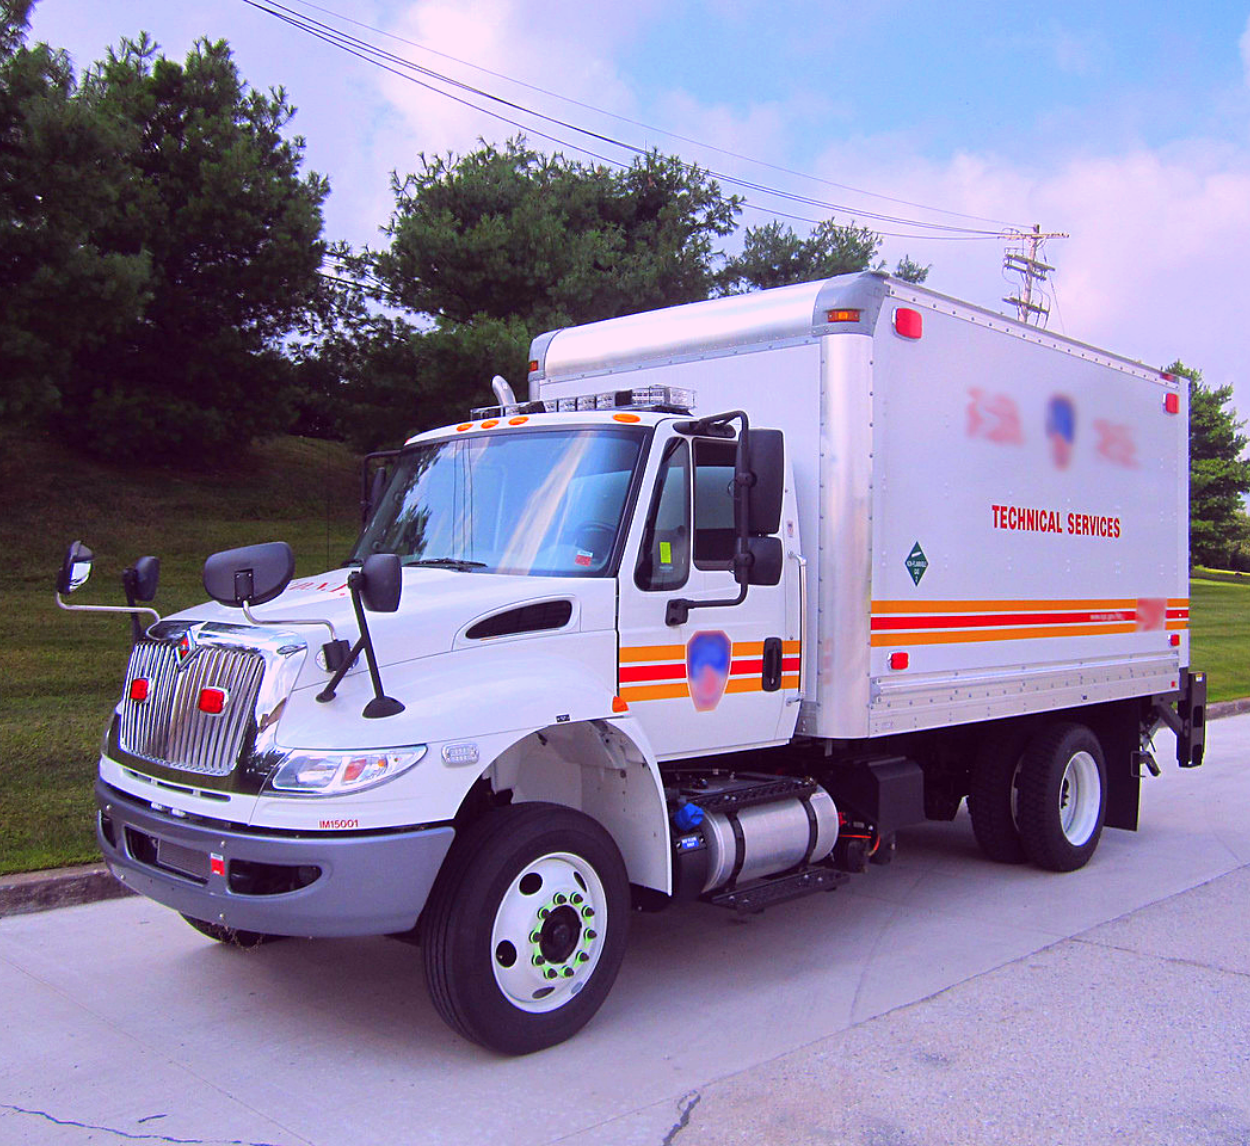 First Priority Emergency Vehicles Custom Box Truck Specialty Vehicles